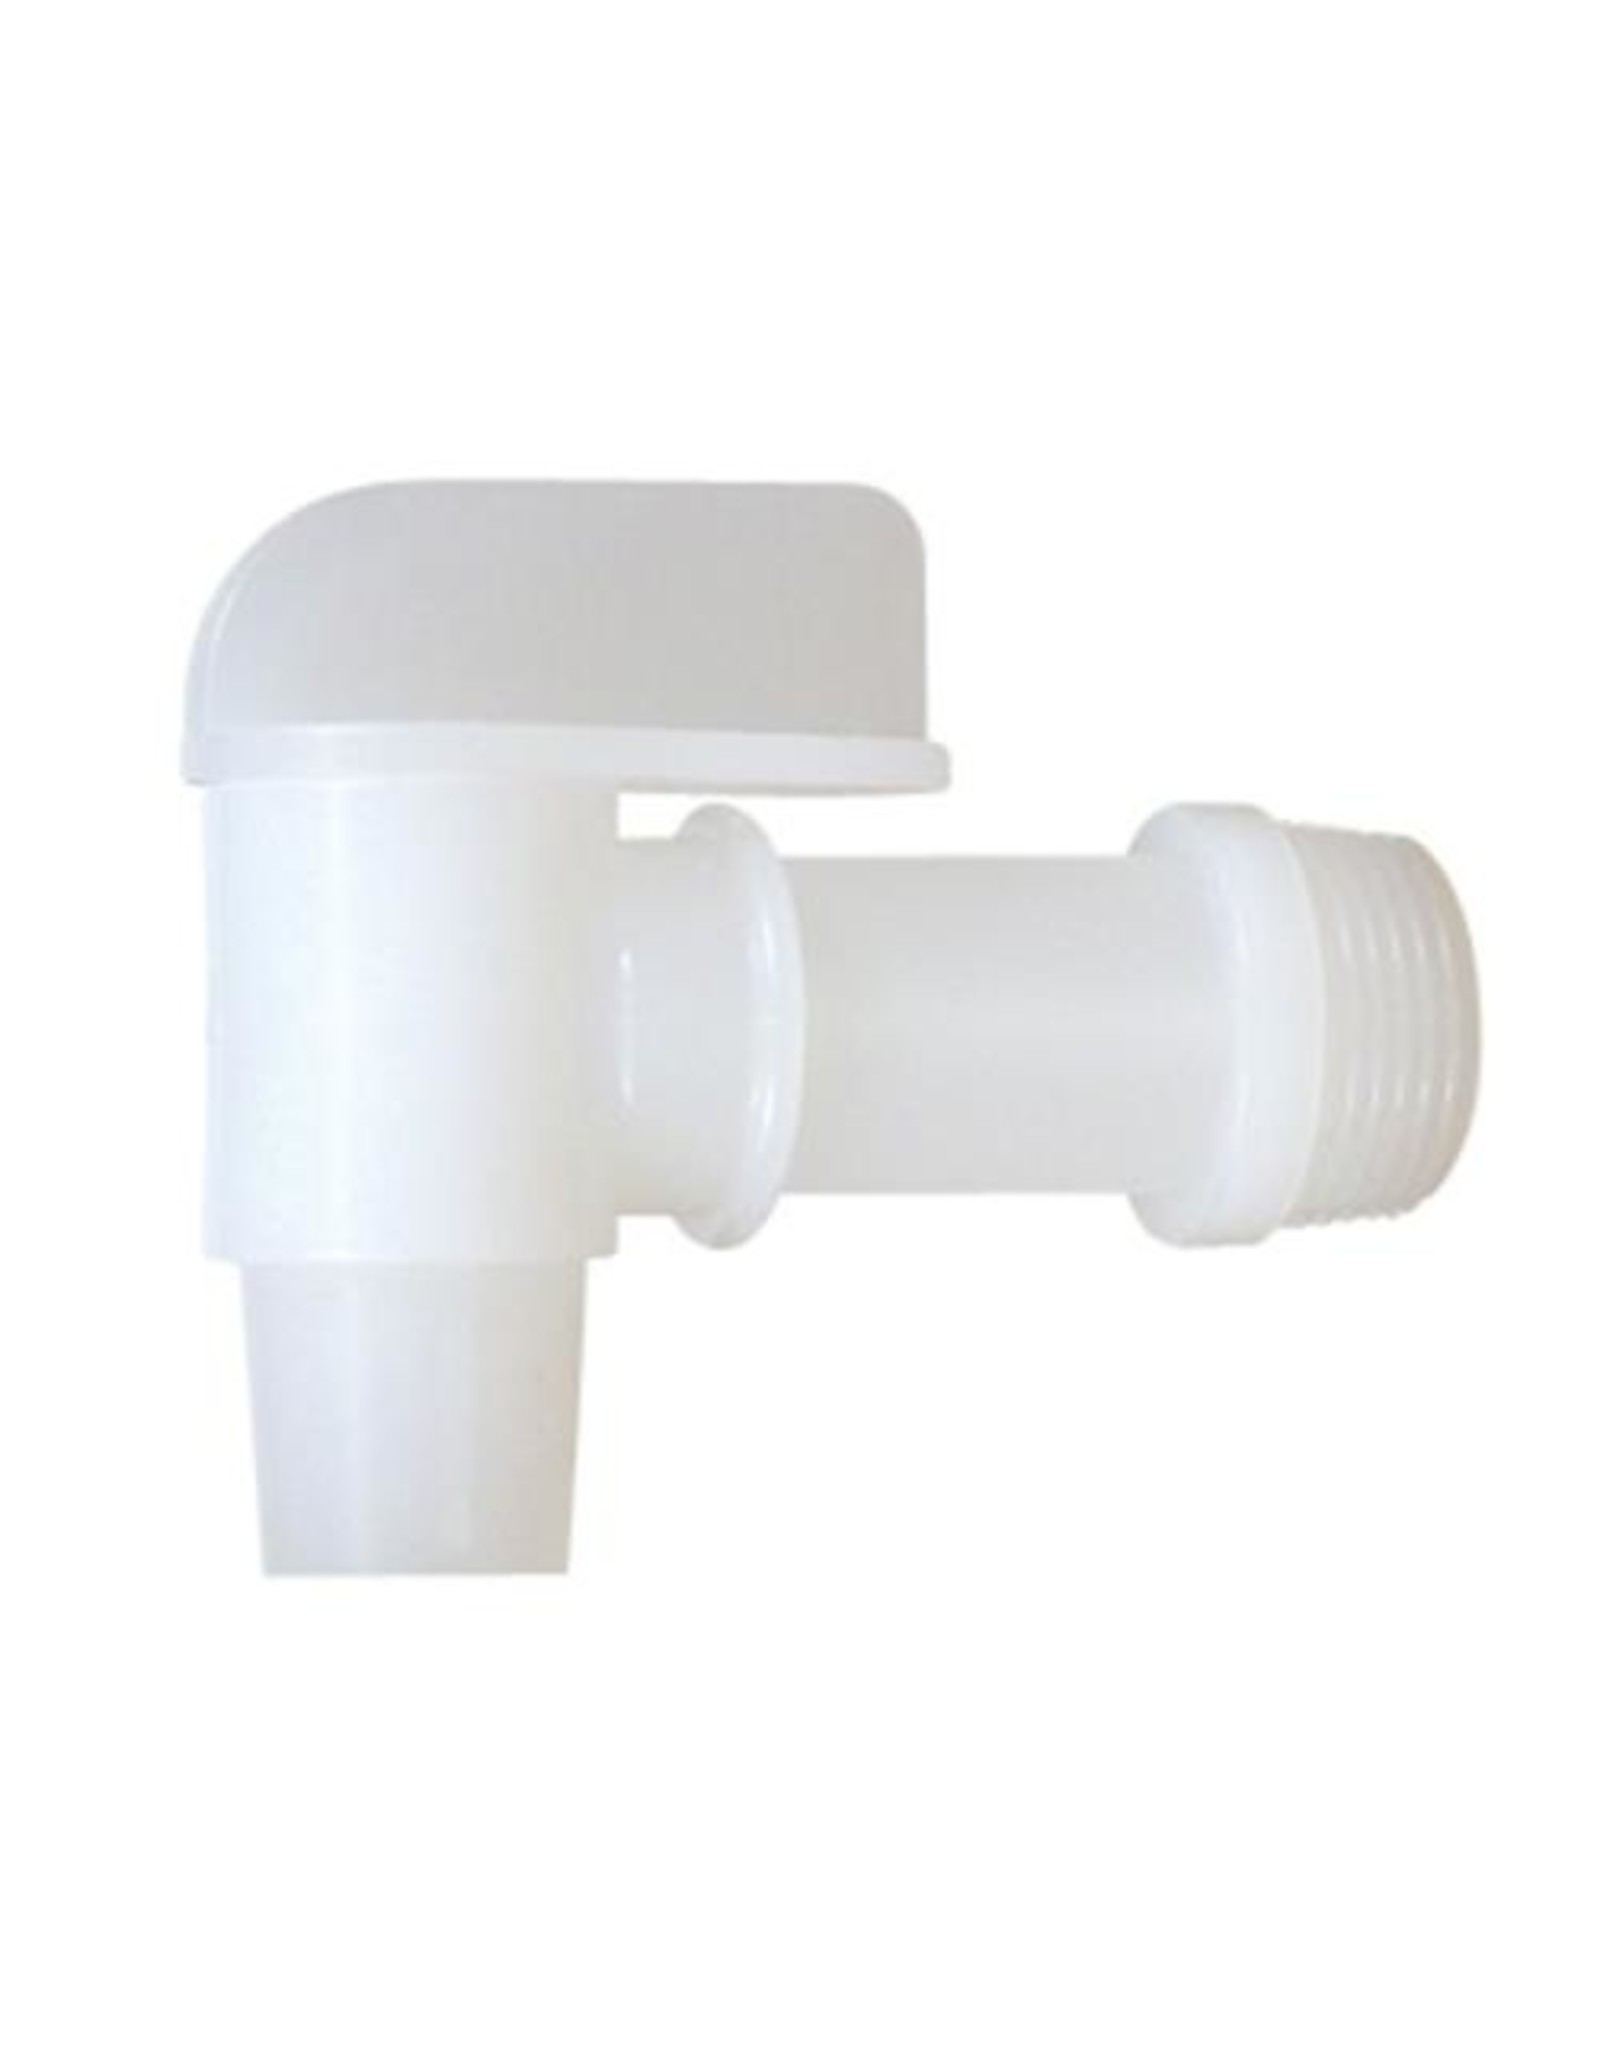 General Hydroponics GH Flora Series Spigot For 6 gal